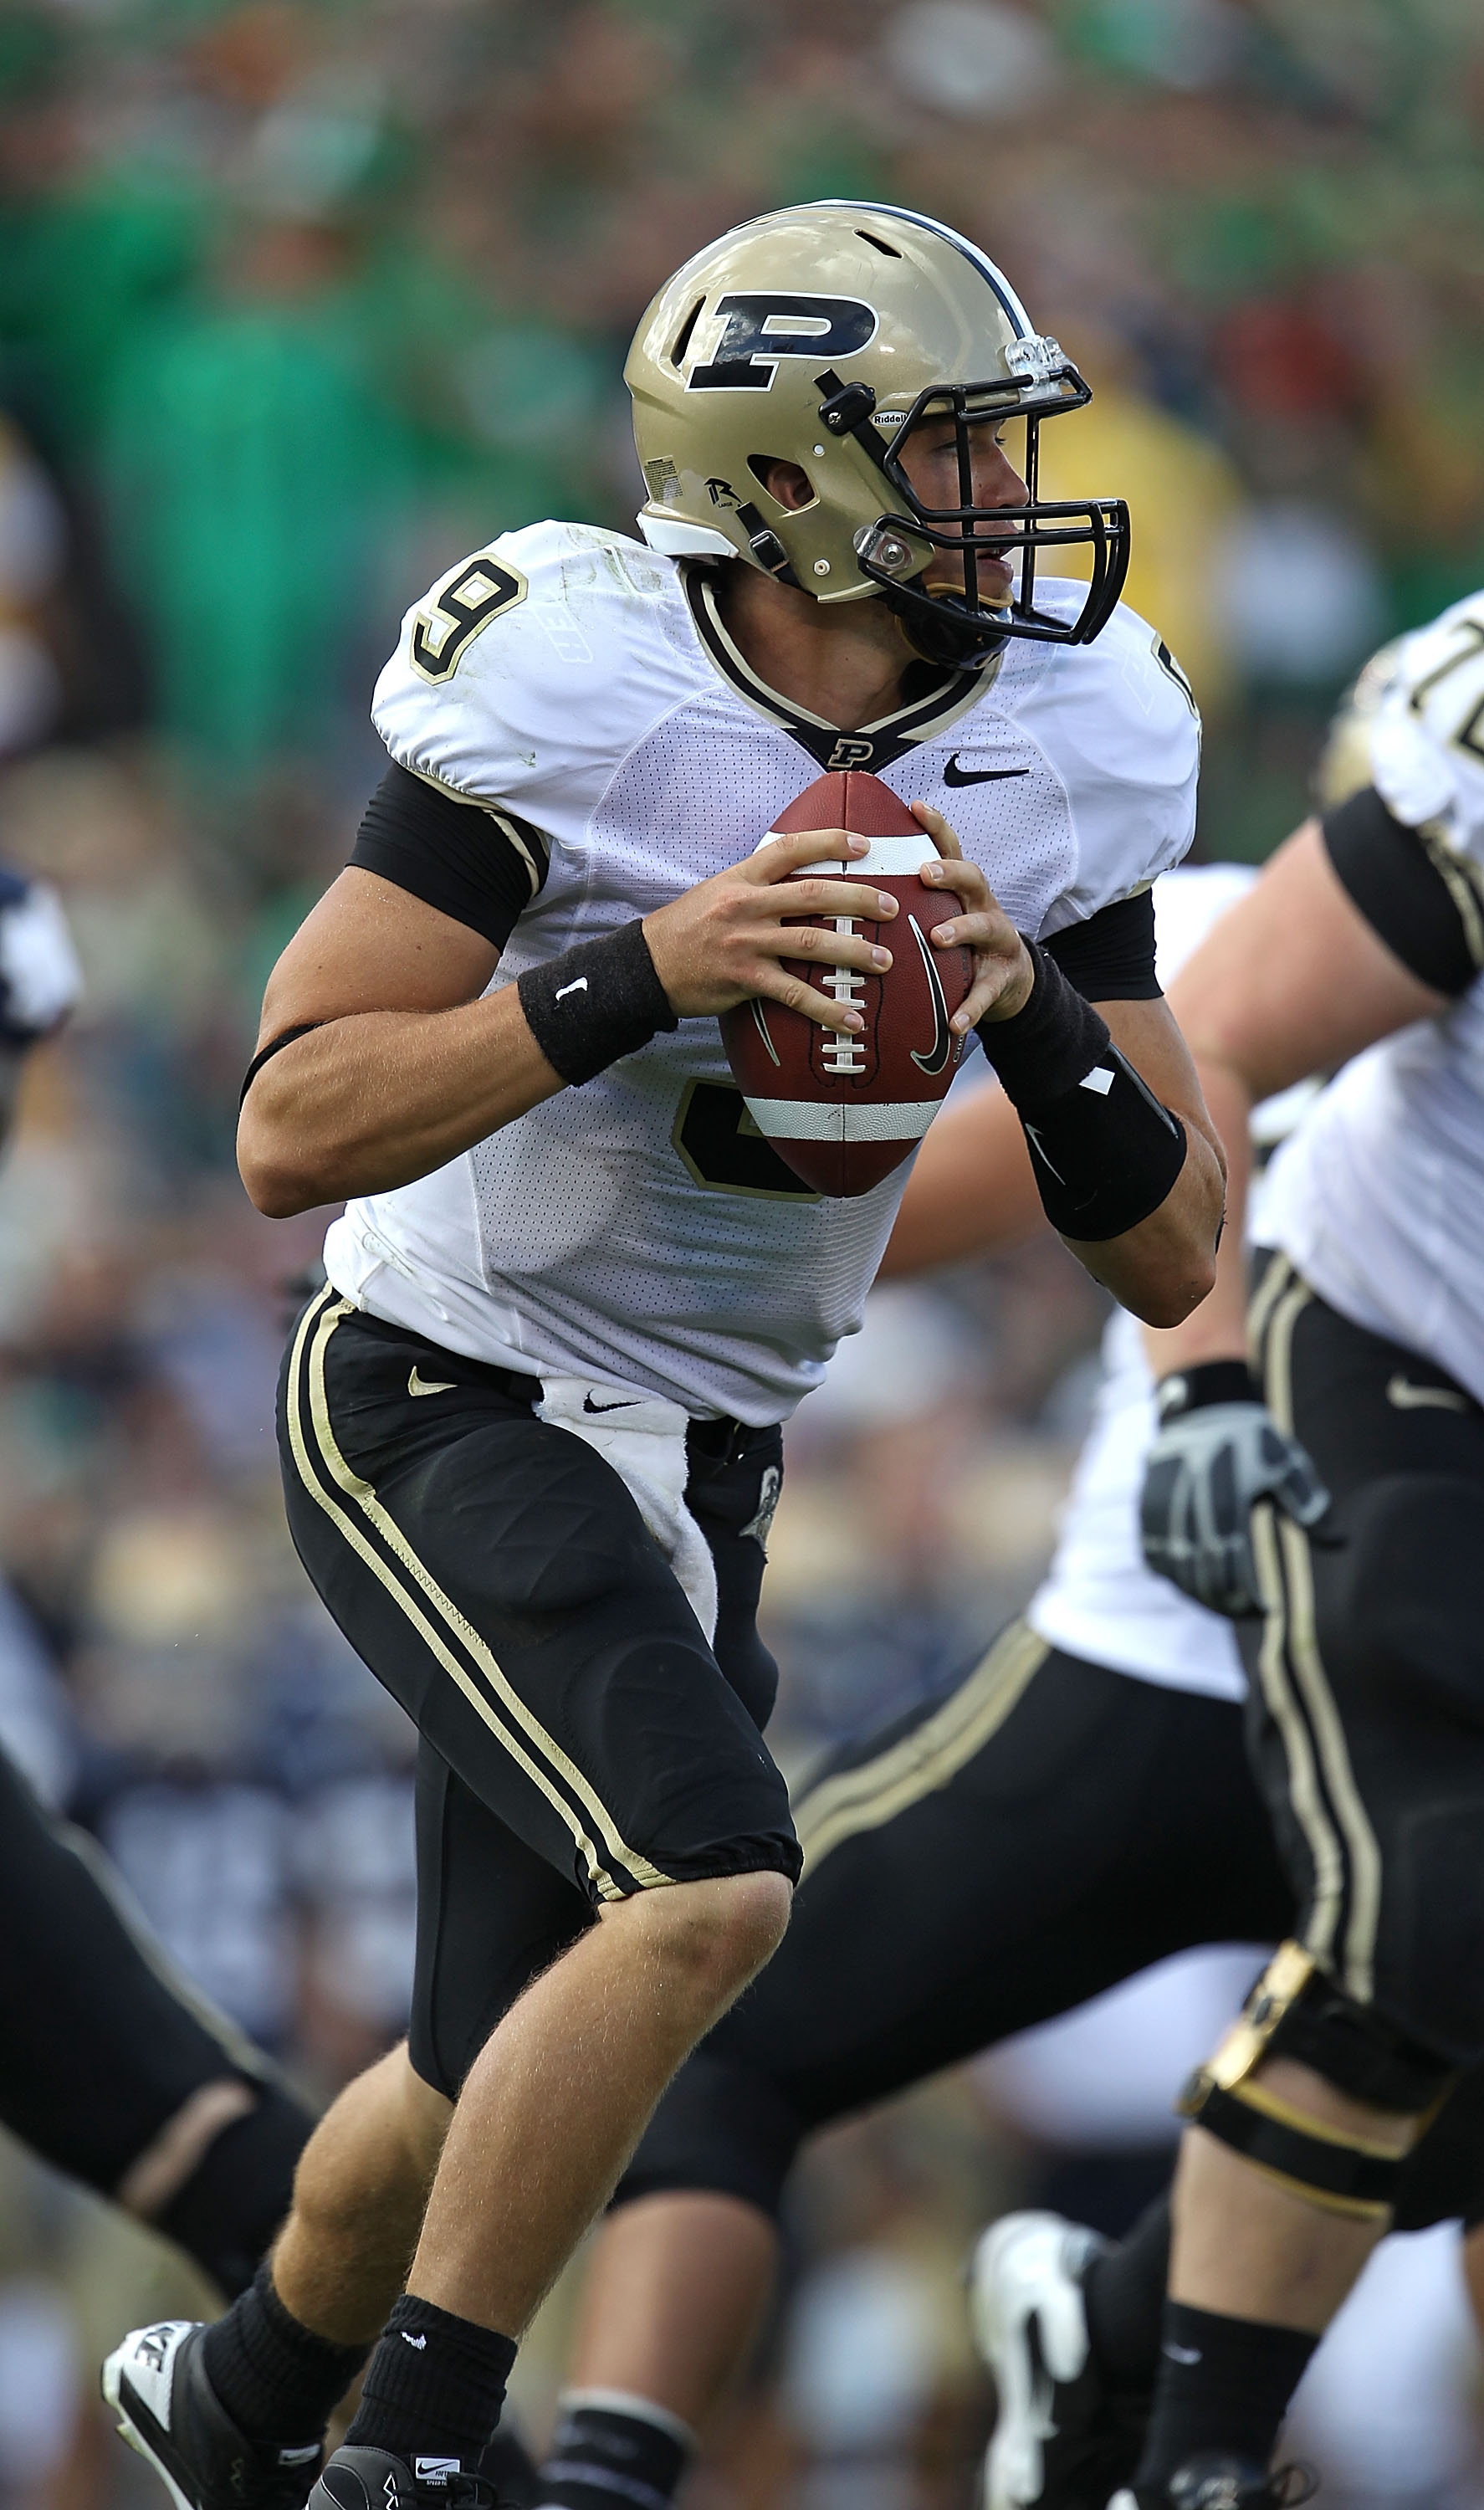 Robert Mavre is returning from injury to lead Purdue